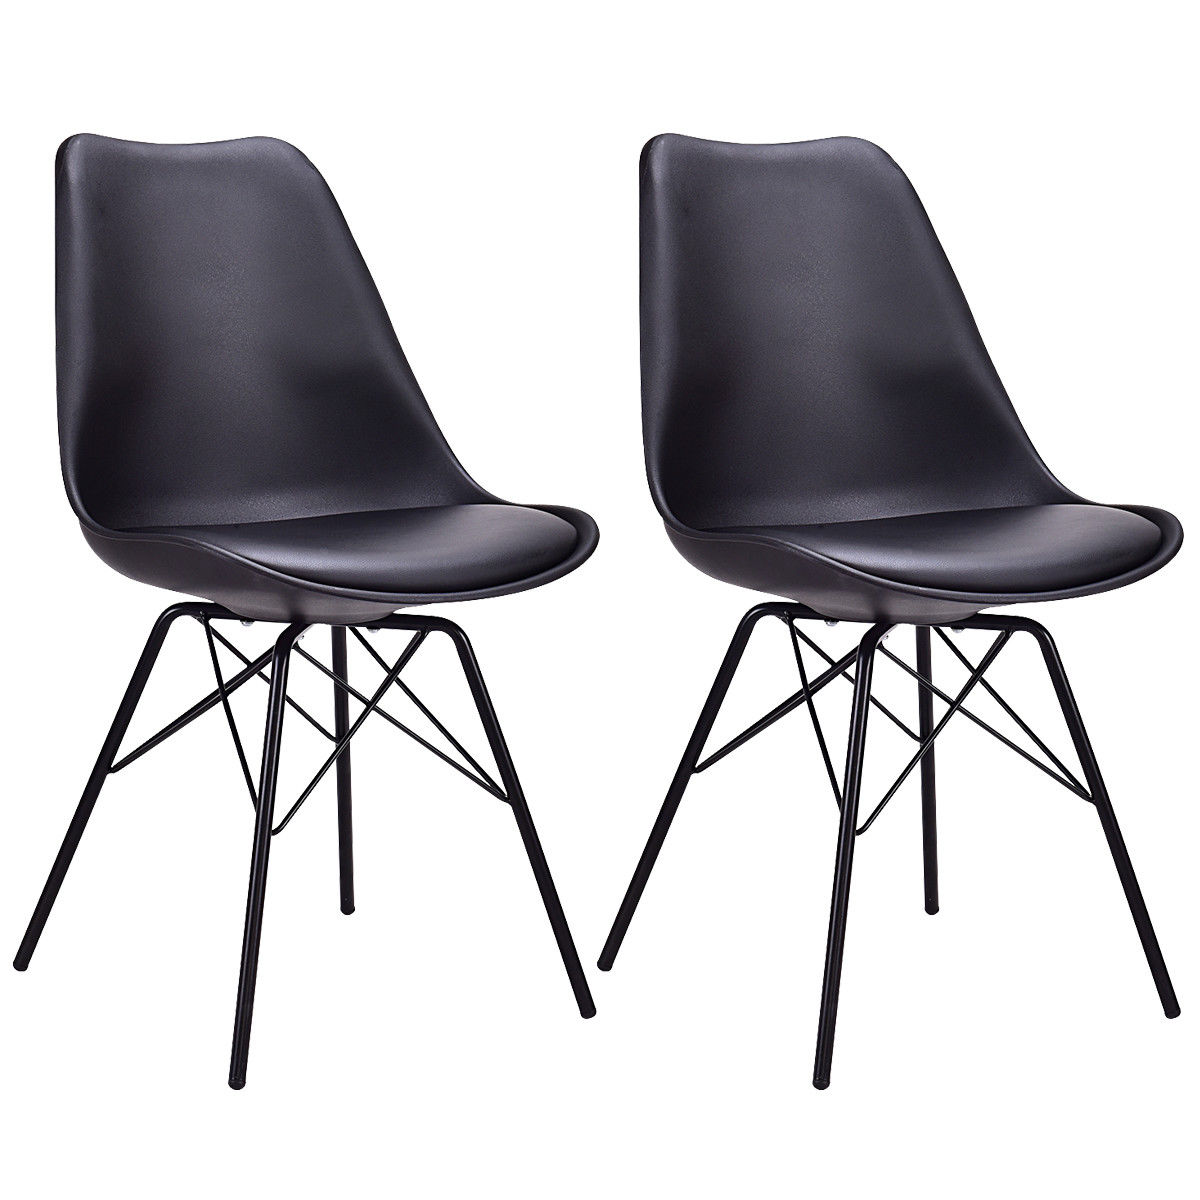 Giantex Set of 2pcs Dining Side Chair Upholstered Armless with Padded Seat Metal Legs Black Modern Home Furniture HW56508BK цена 2017